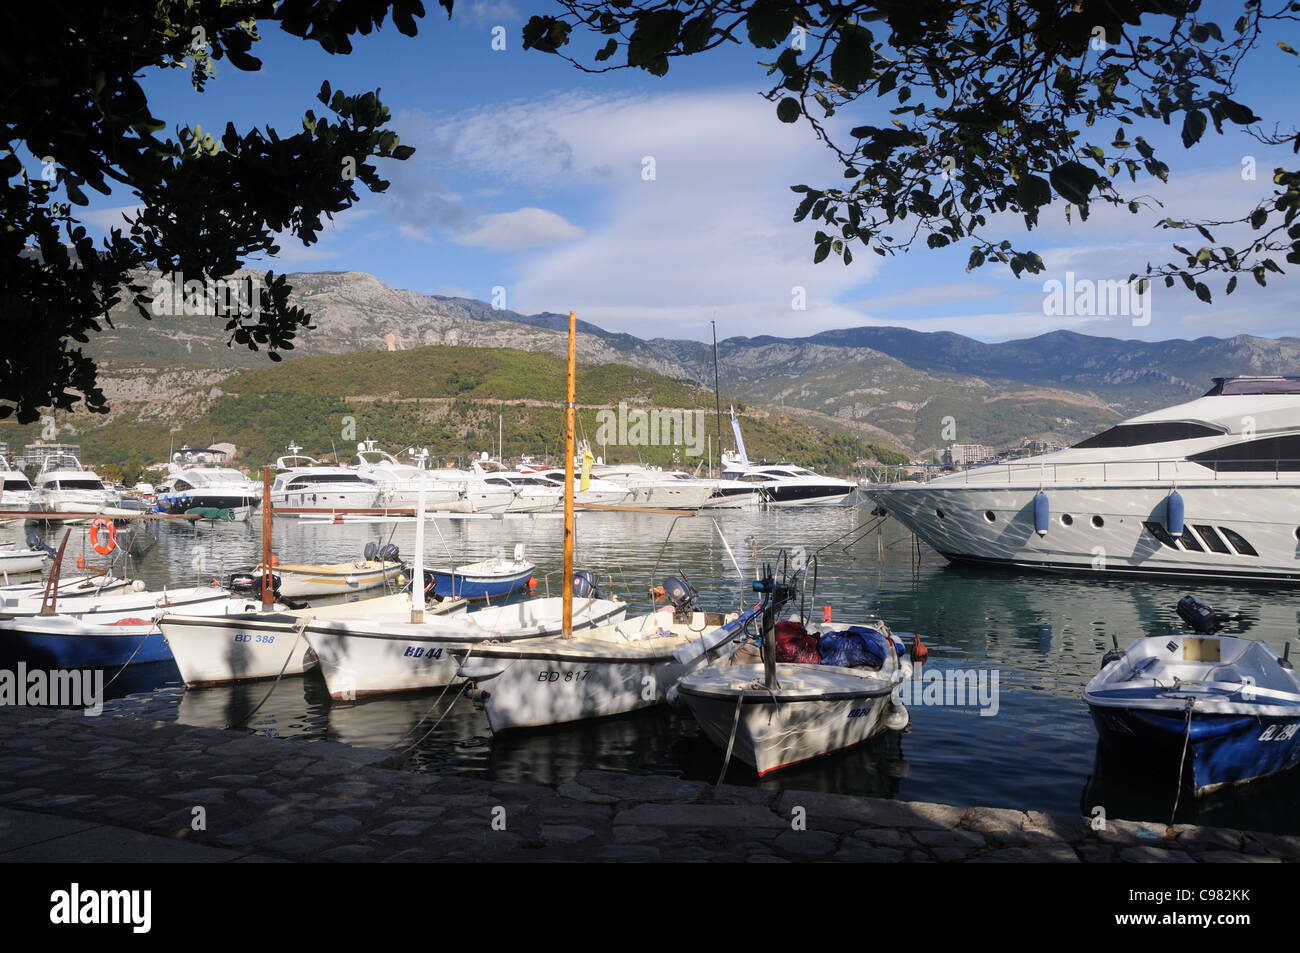 The marina in Budva, Montenegro Stock Photo